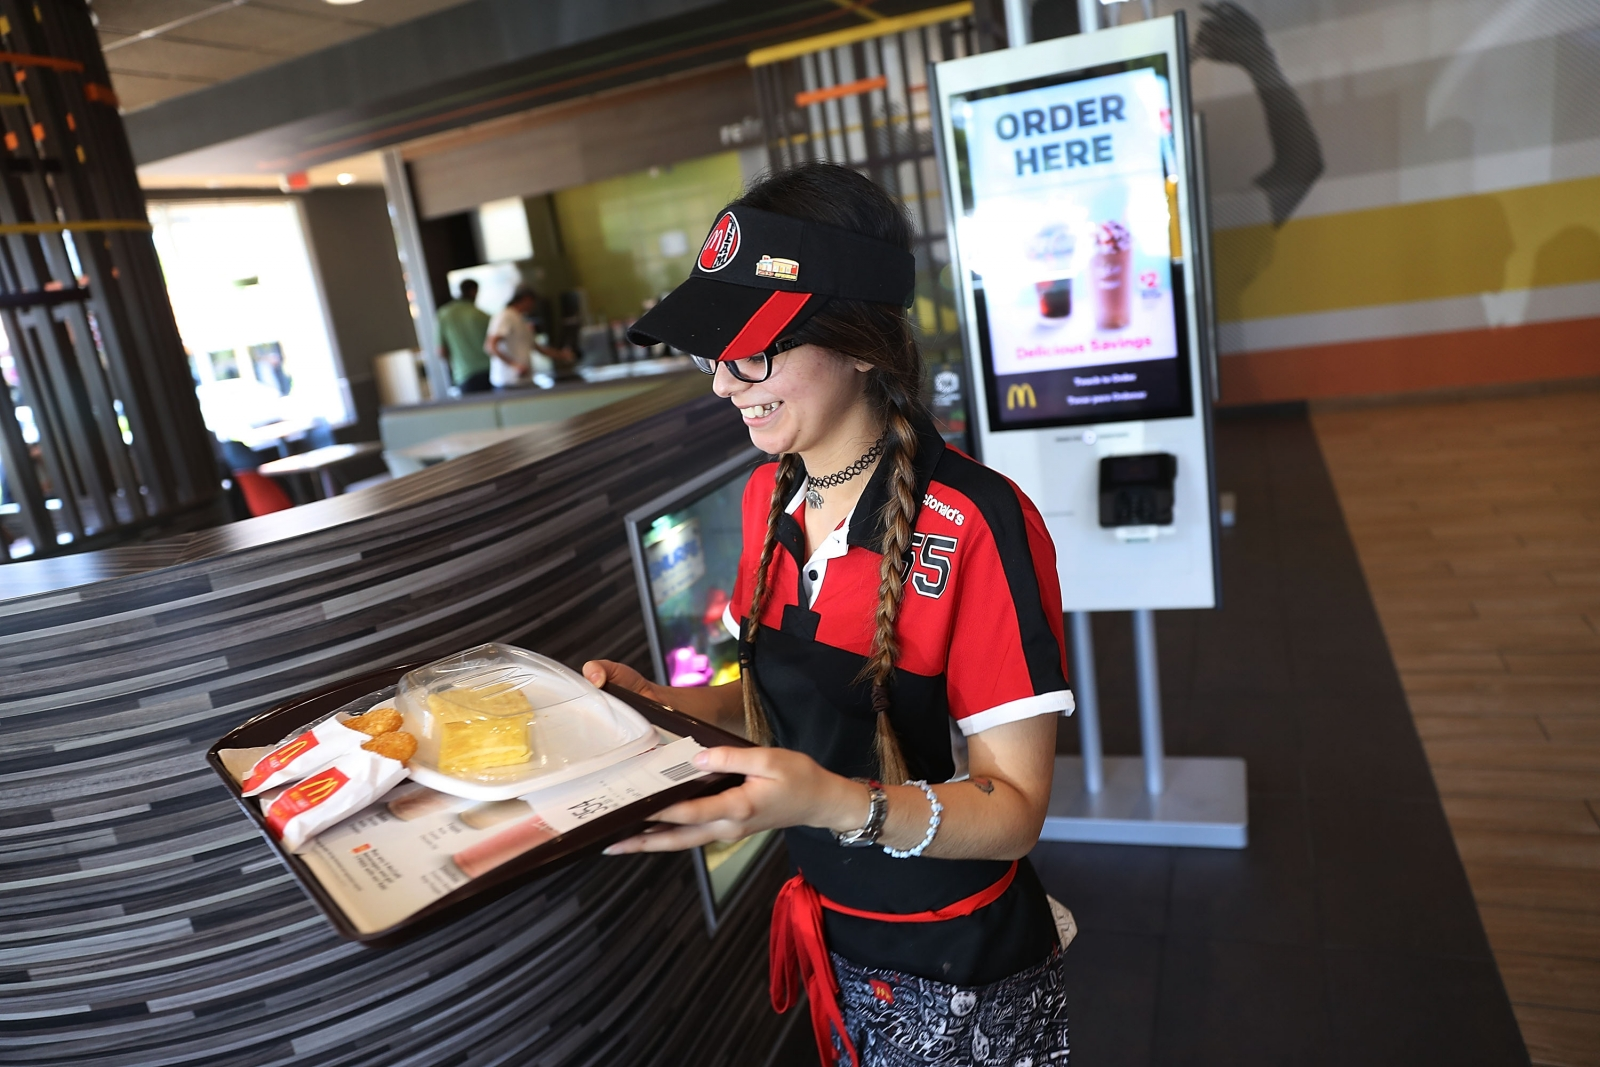 McDonald's robot workers share price